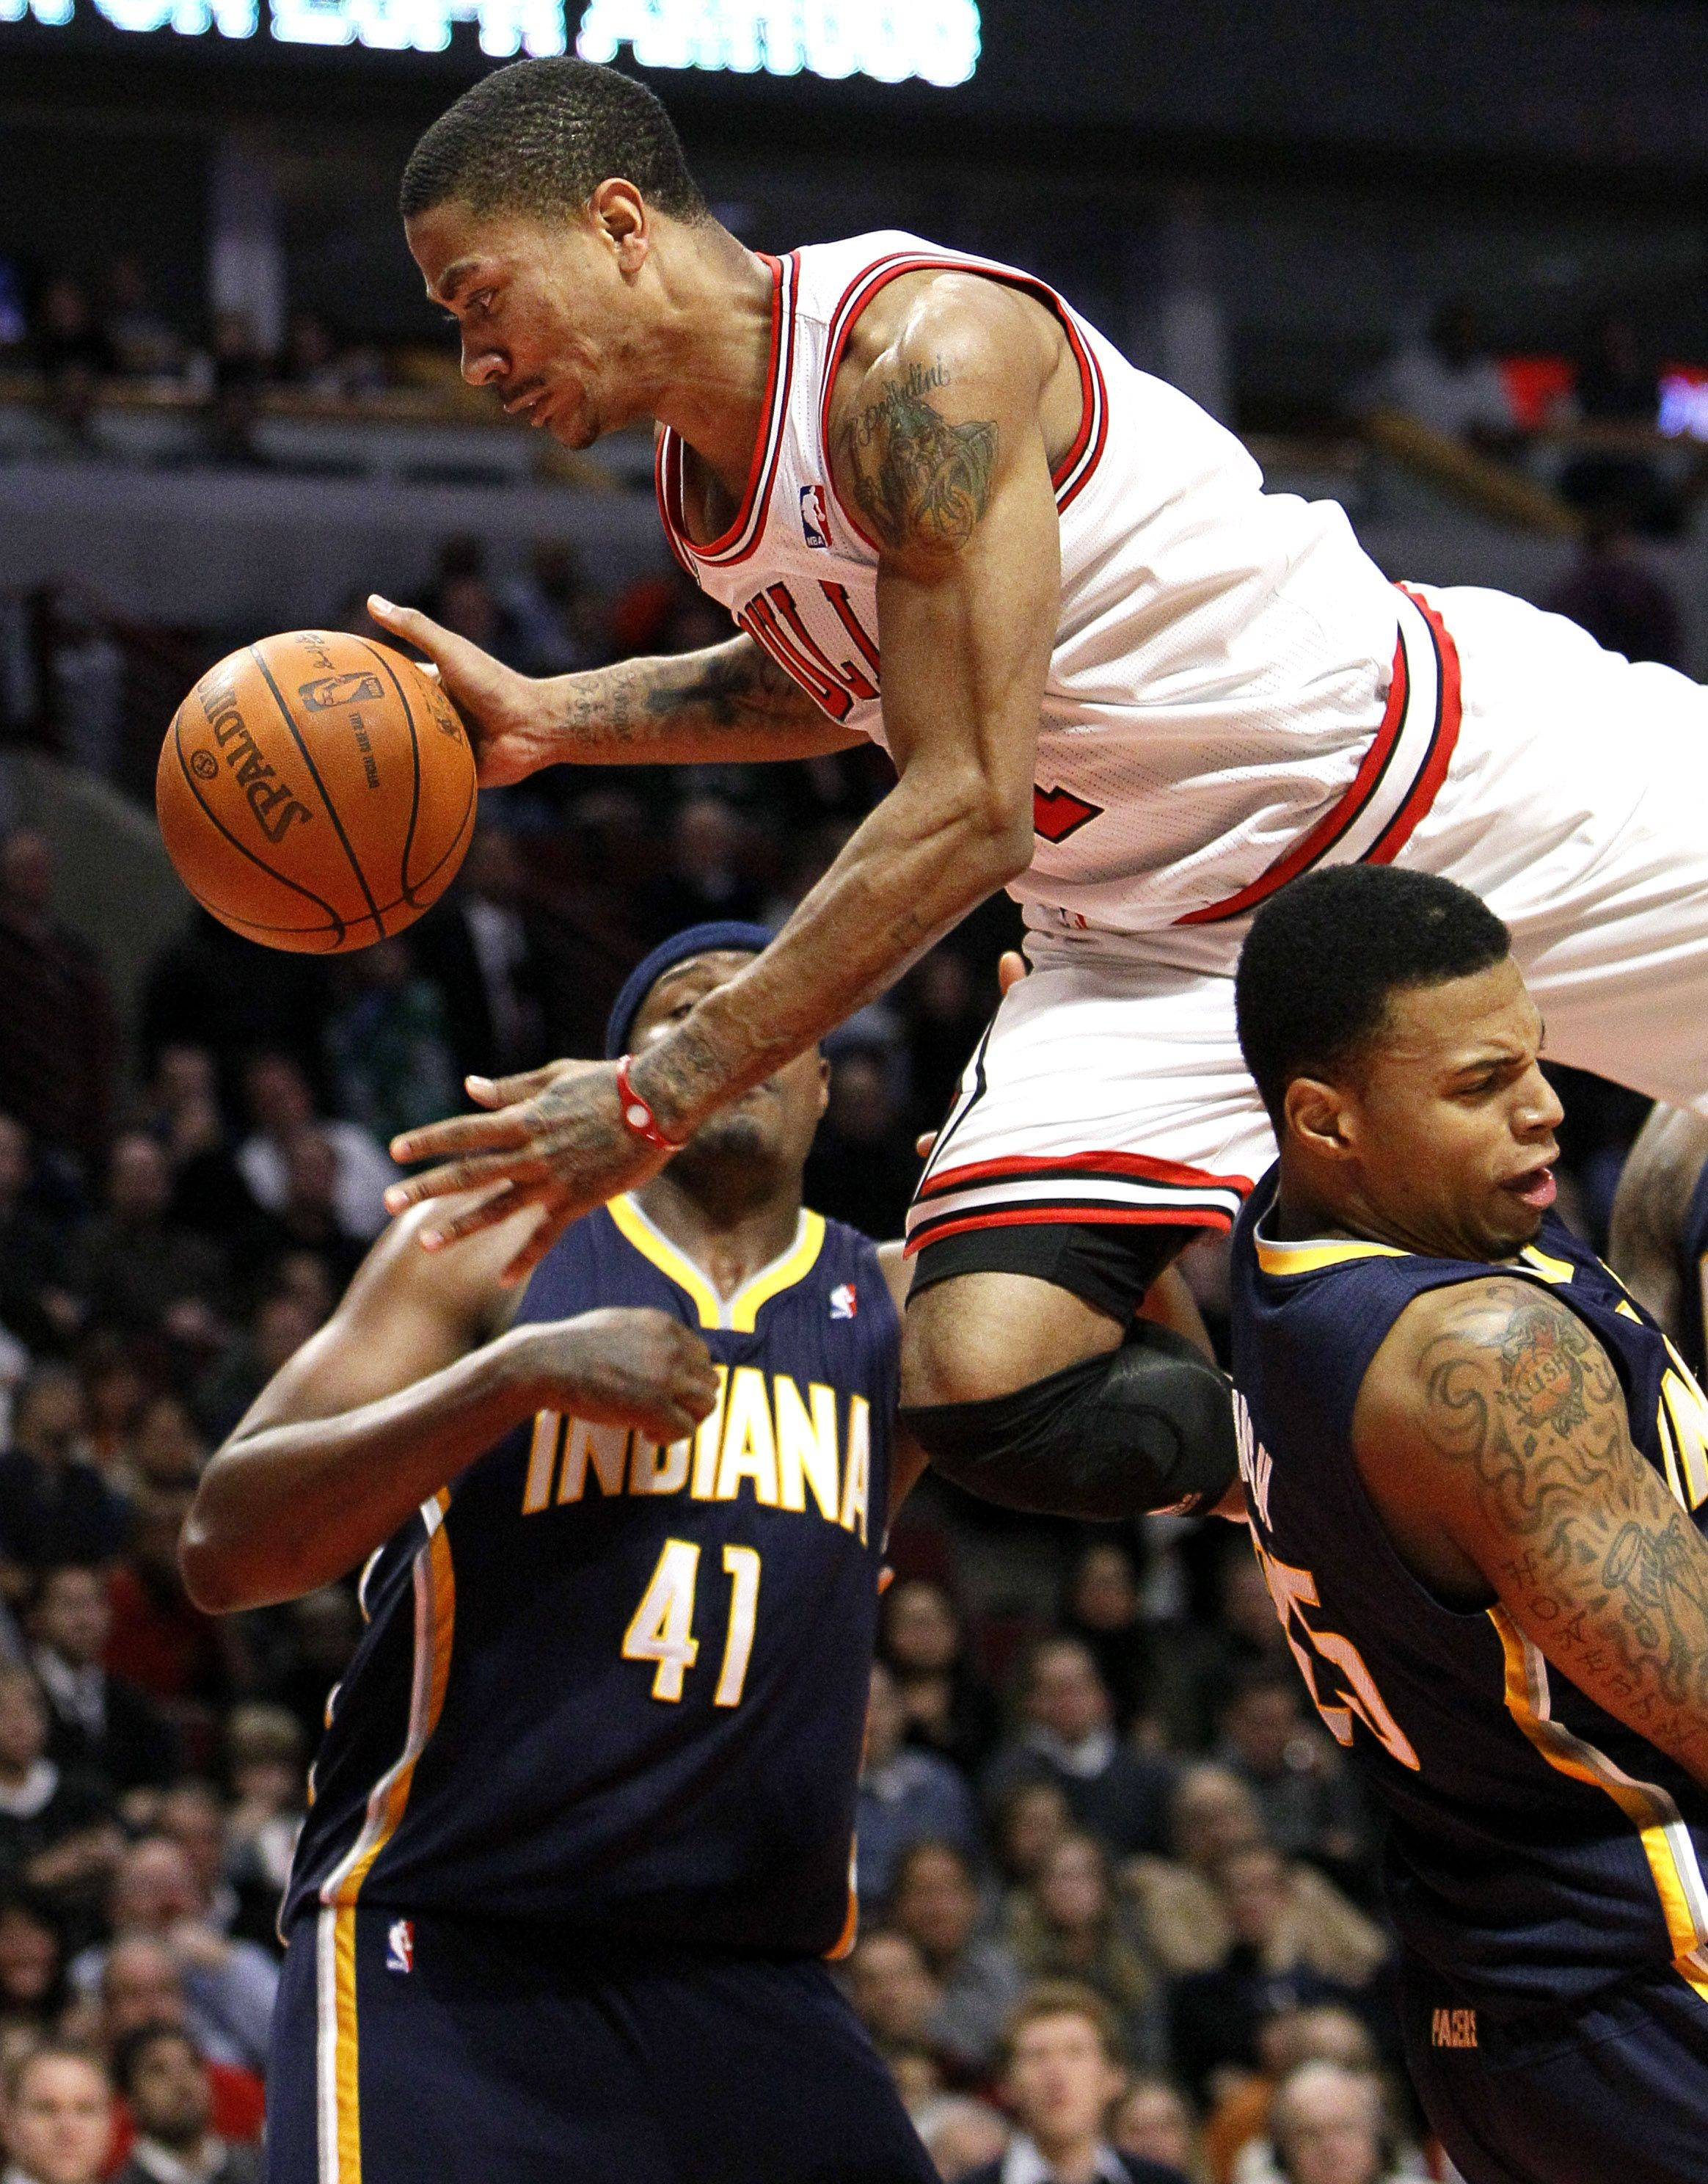 Chicago Bulls point guard Derrick Rose, center, falls over Indiana Pacers shooting guard Brandon Rush as forward James Posey watches, during the second half of an NBA basketball game Monday, Dec. 13, 2010, in Chicago. The Bulls won 92-73.